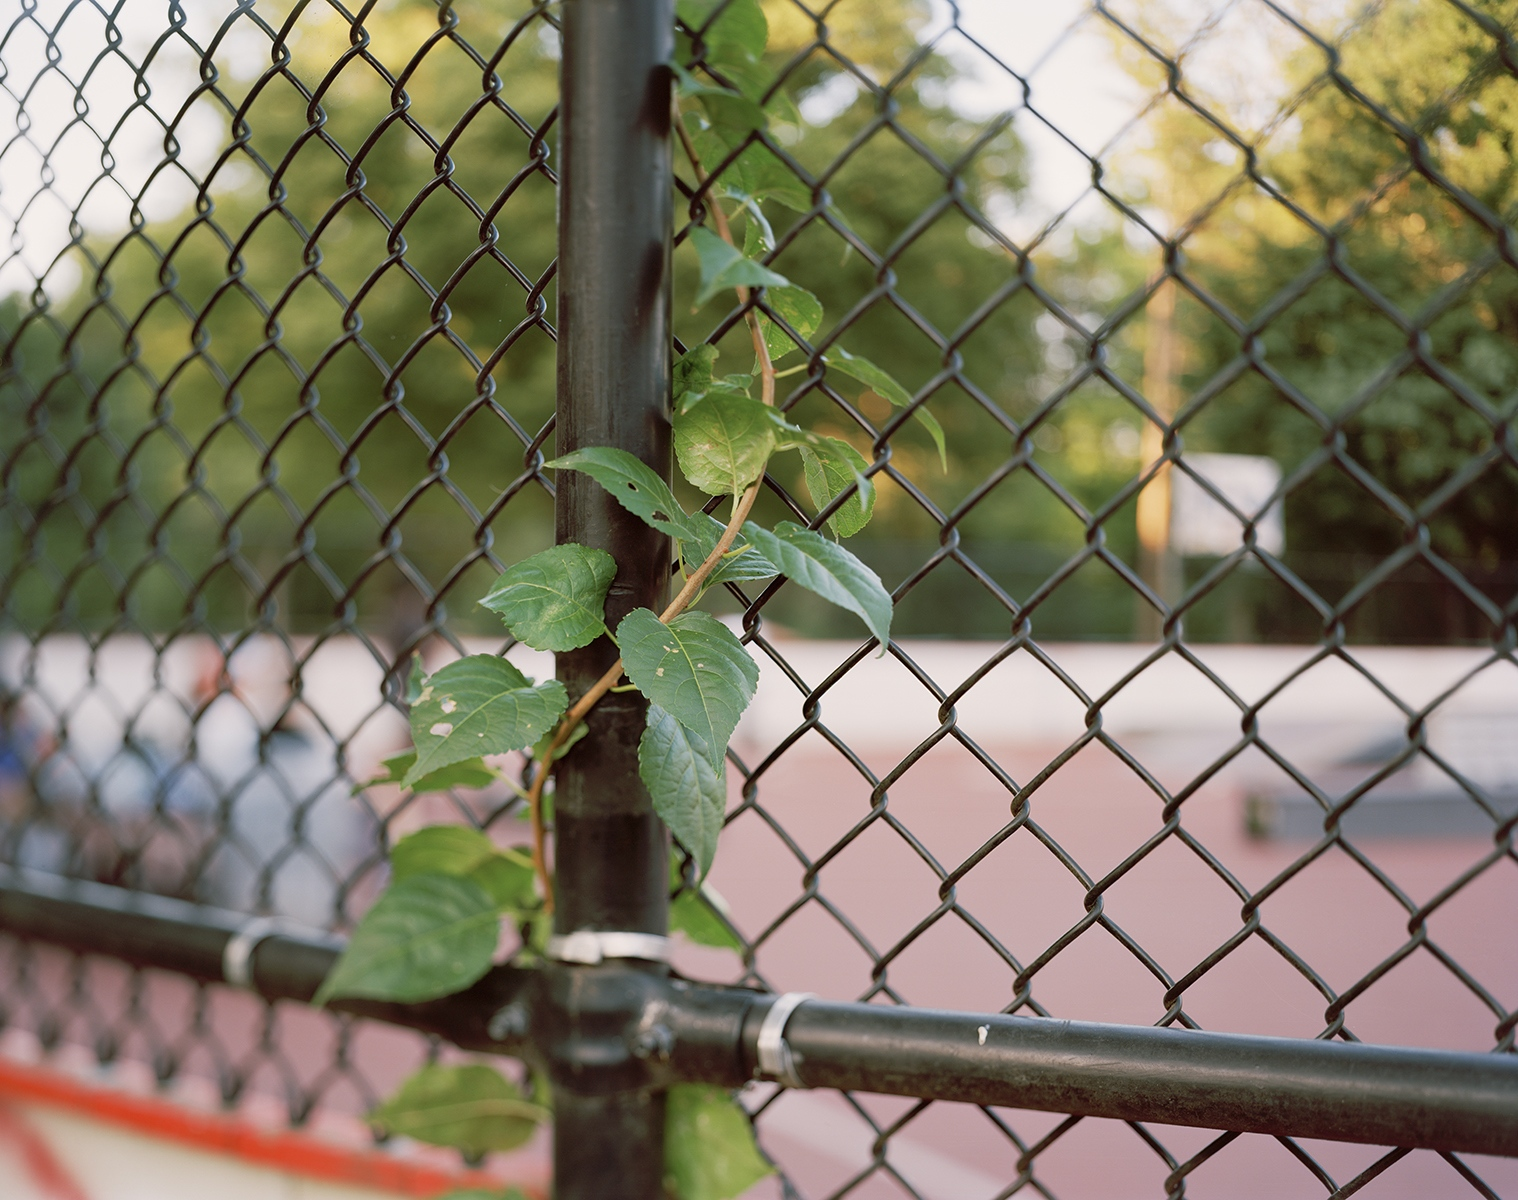 Art and Documentary Photography - Loading FenceBranch02.jpg